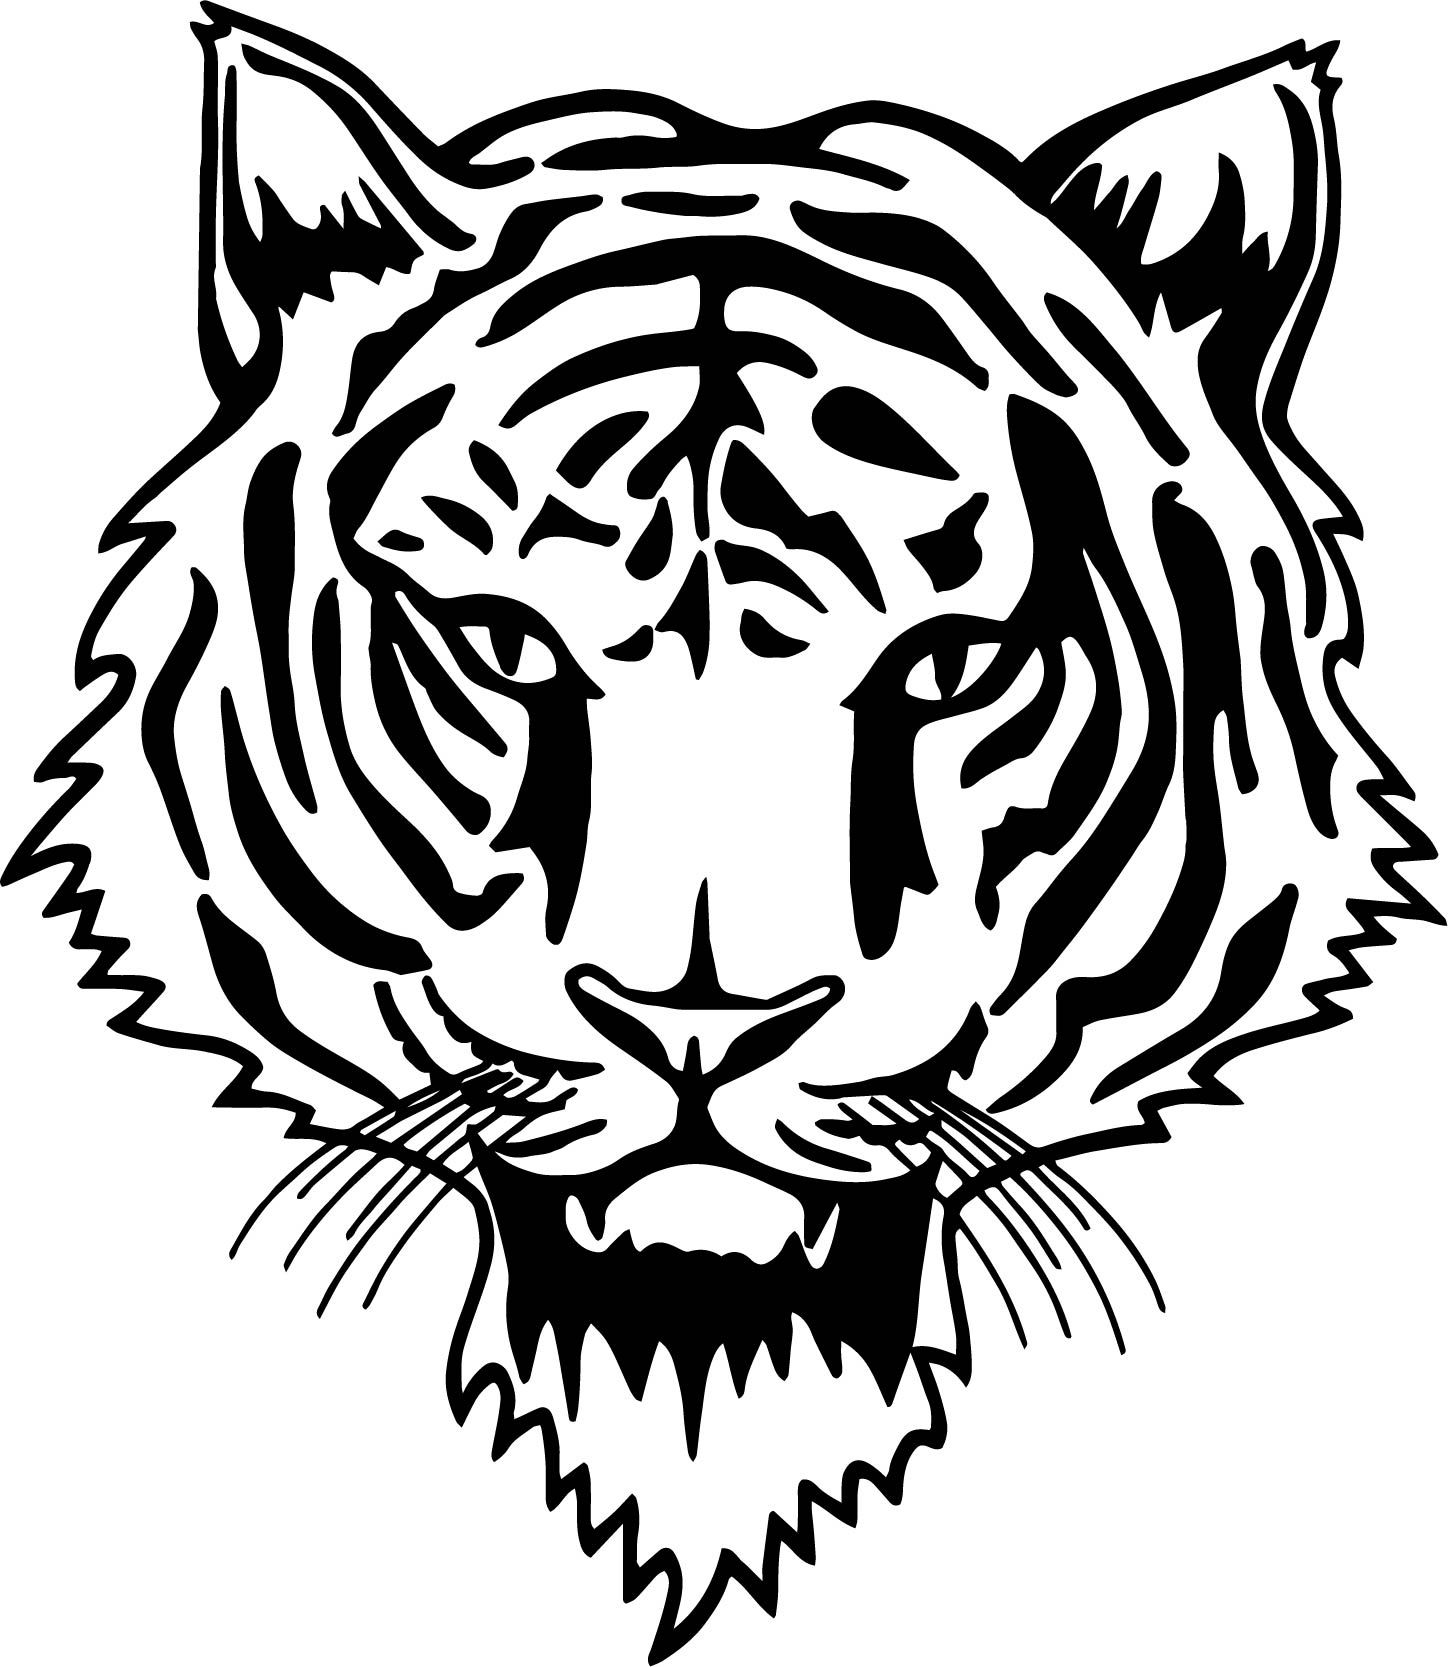 tiger face coloring awesome tiger cat face coloring page tiger face cat coloring face tiger